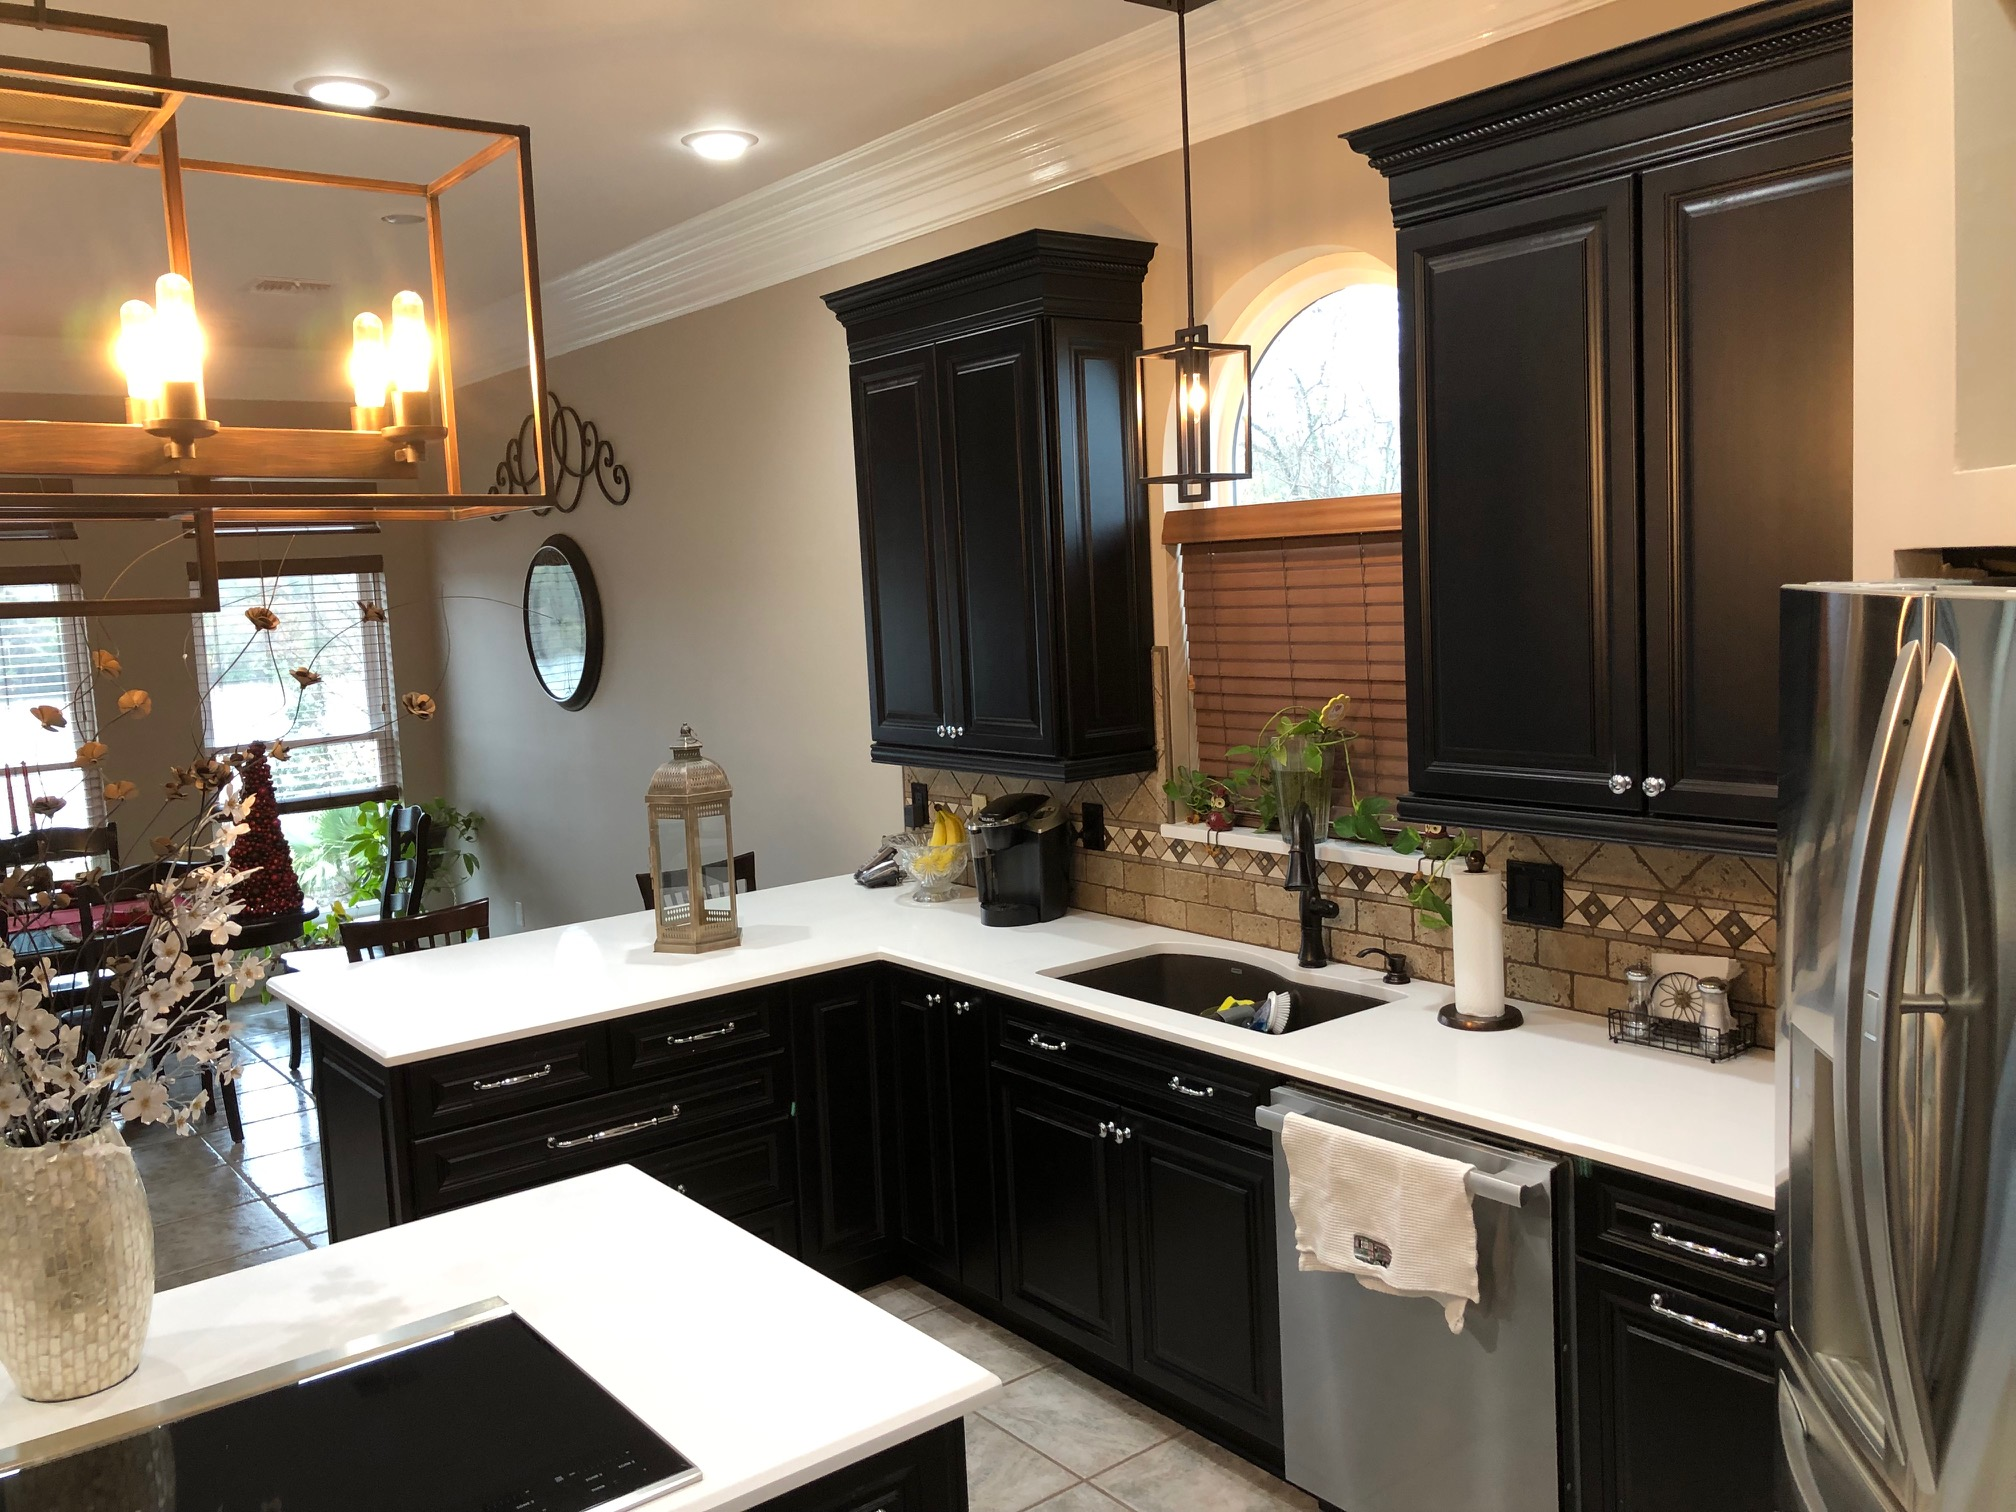 Wellborn Forest Black cabinetry white quartz counter tops